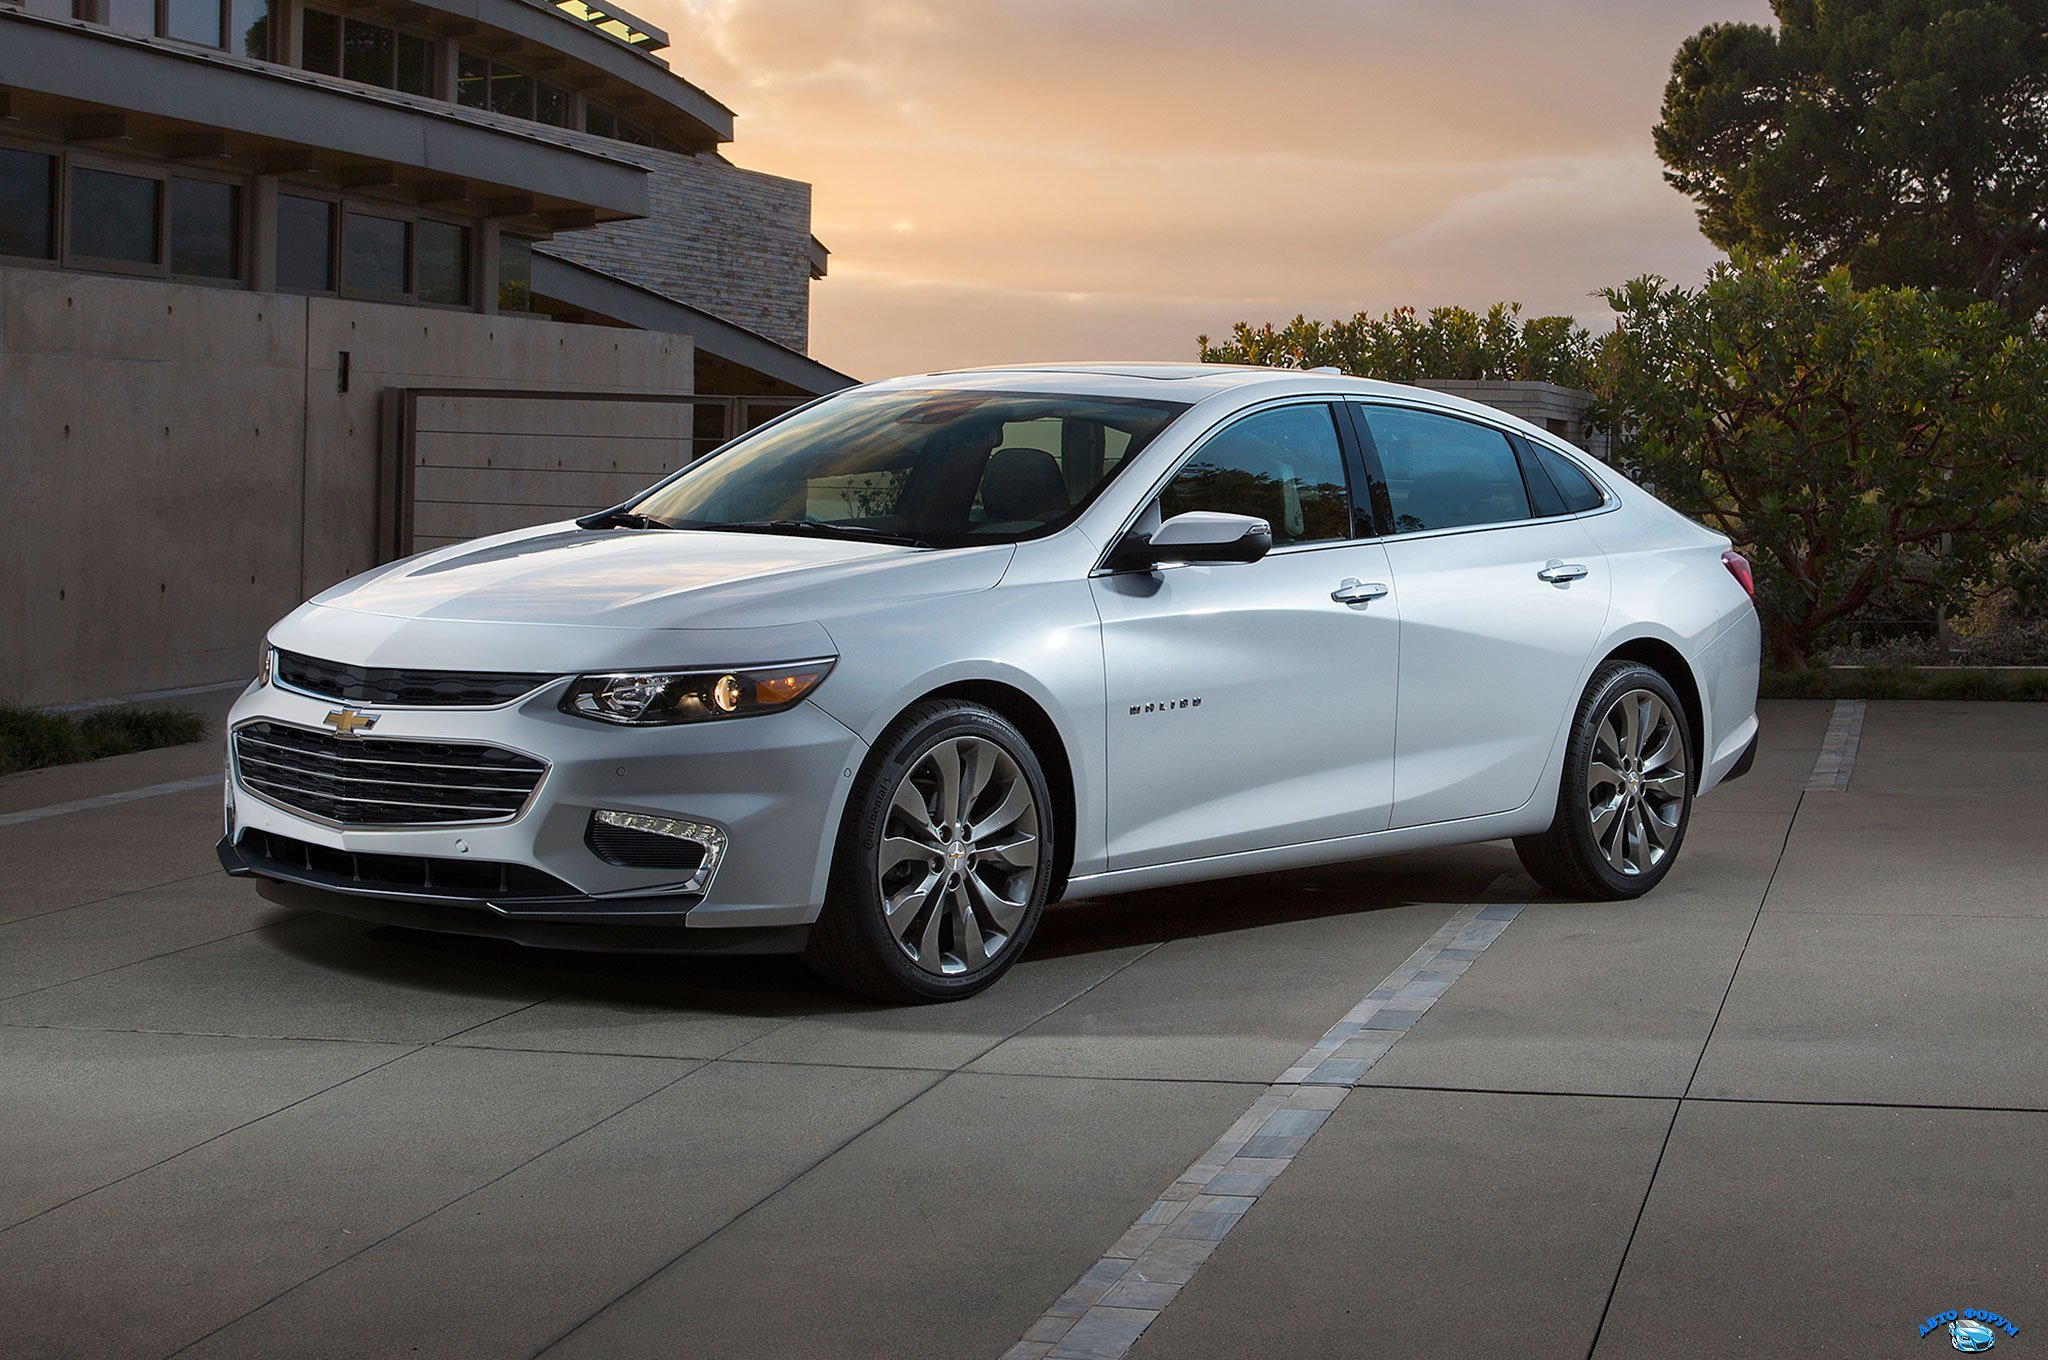 2016-Chevrolet-Malibu-front-three-quarter-static.jpg